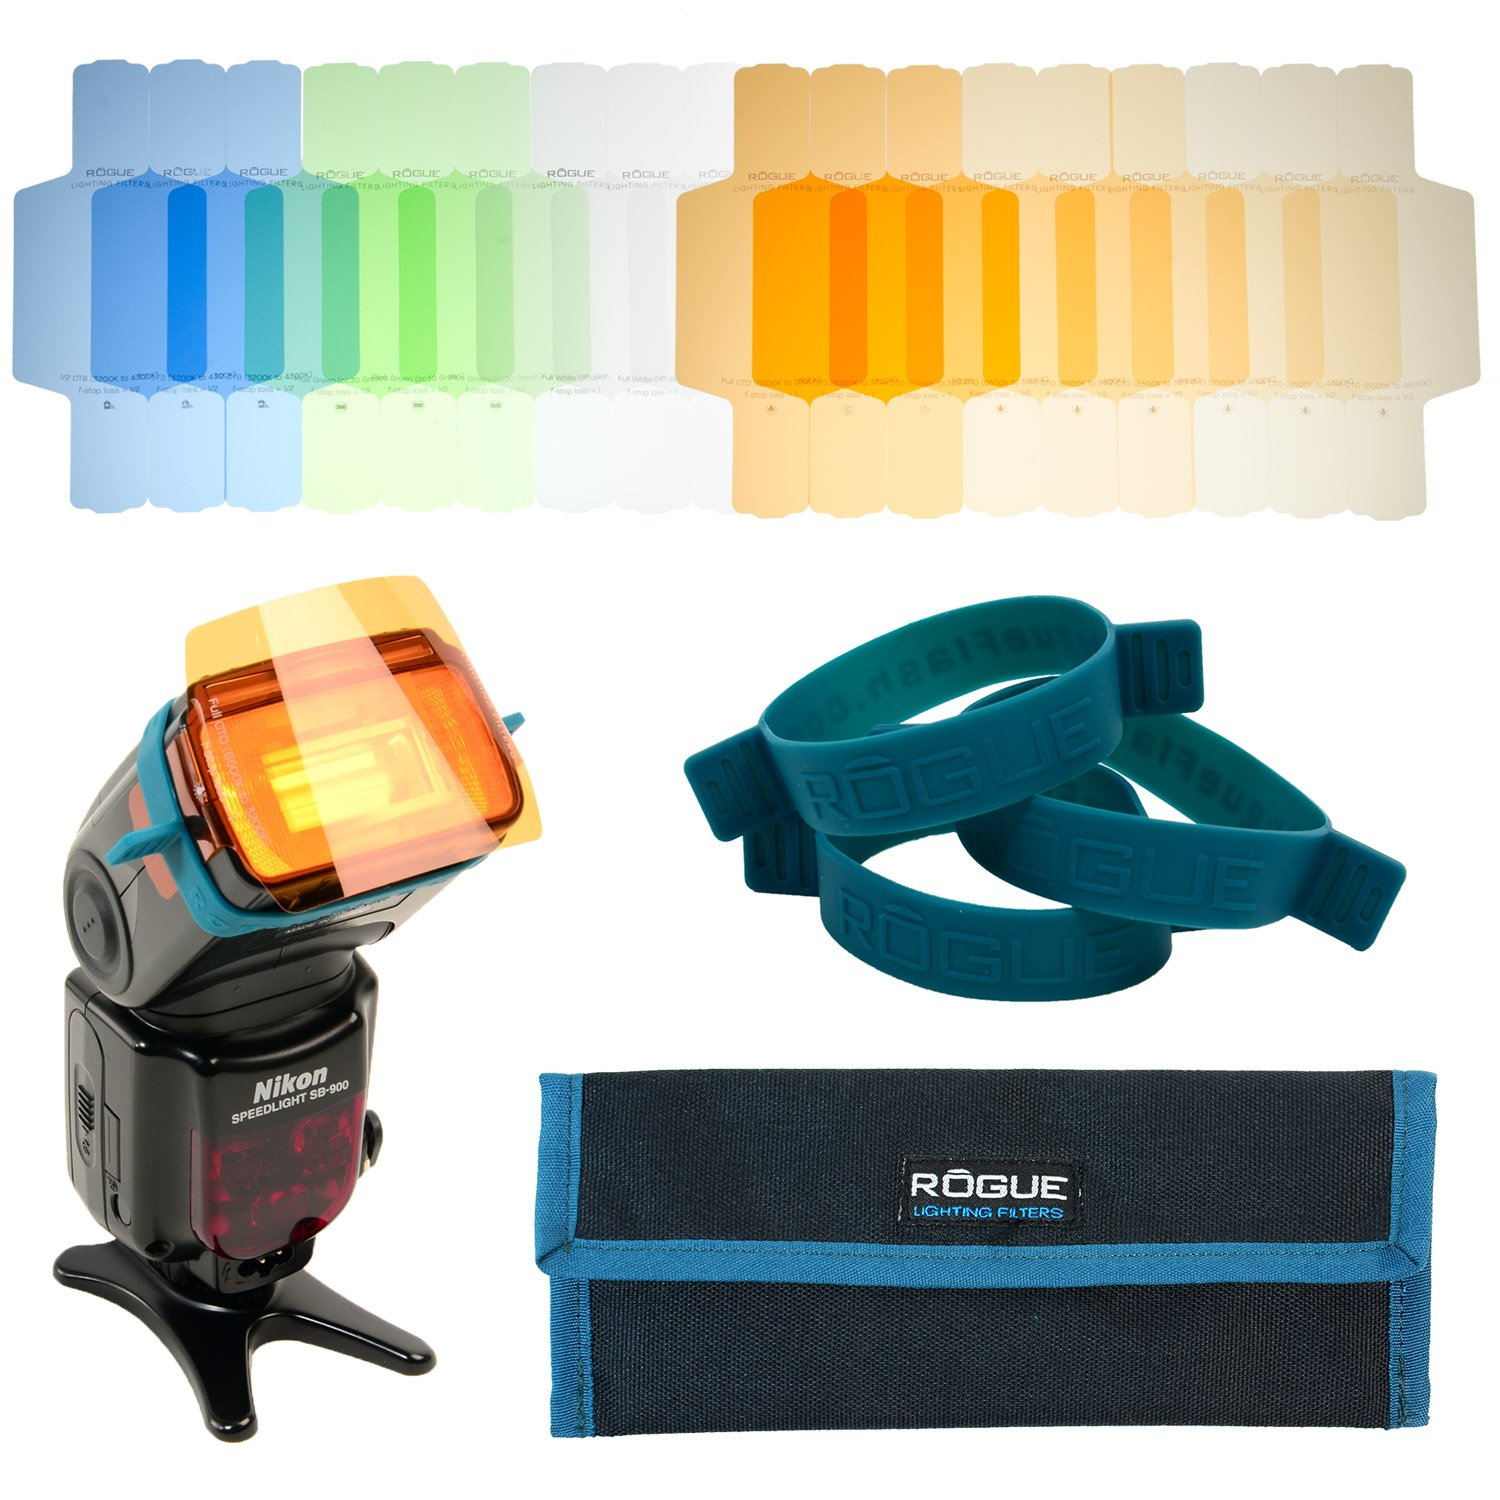 Rogue Photographic Design ROGUEGEL-CC Flash Gels Color Correction Filter Kit by Rogue Photographic Design